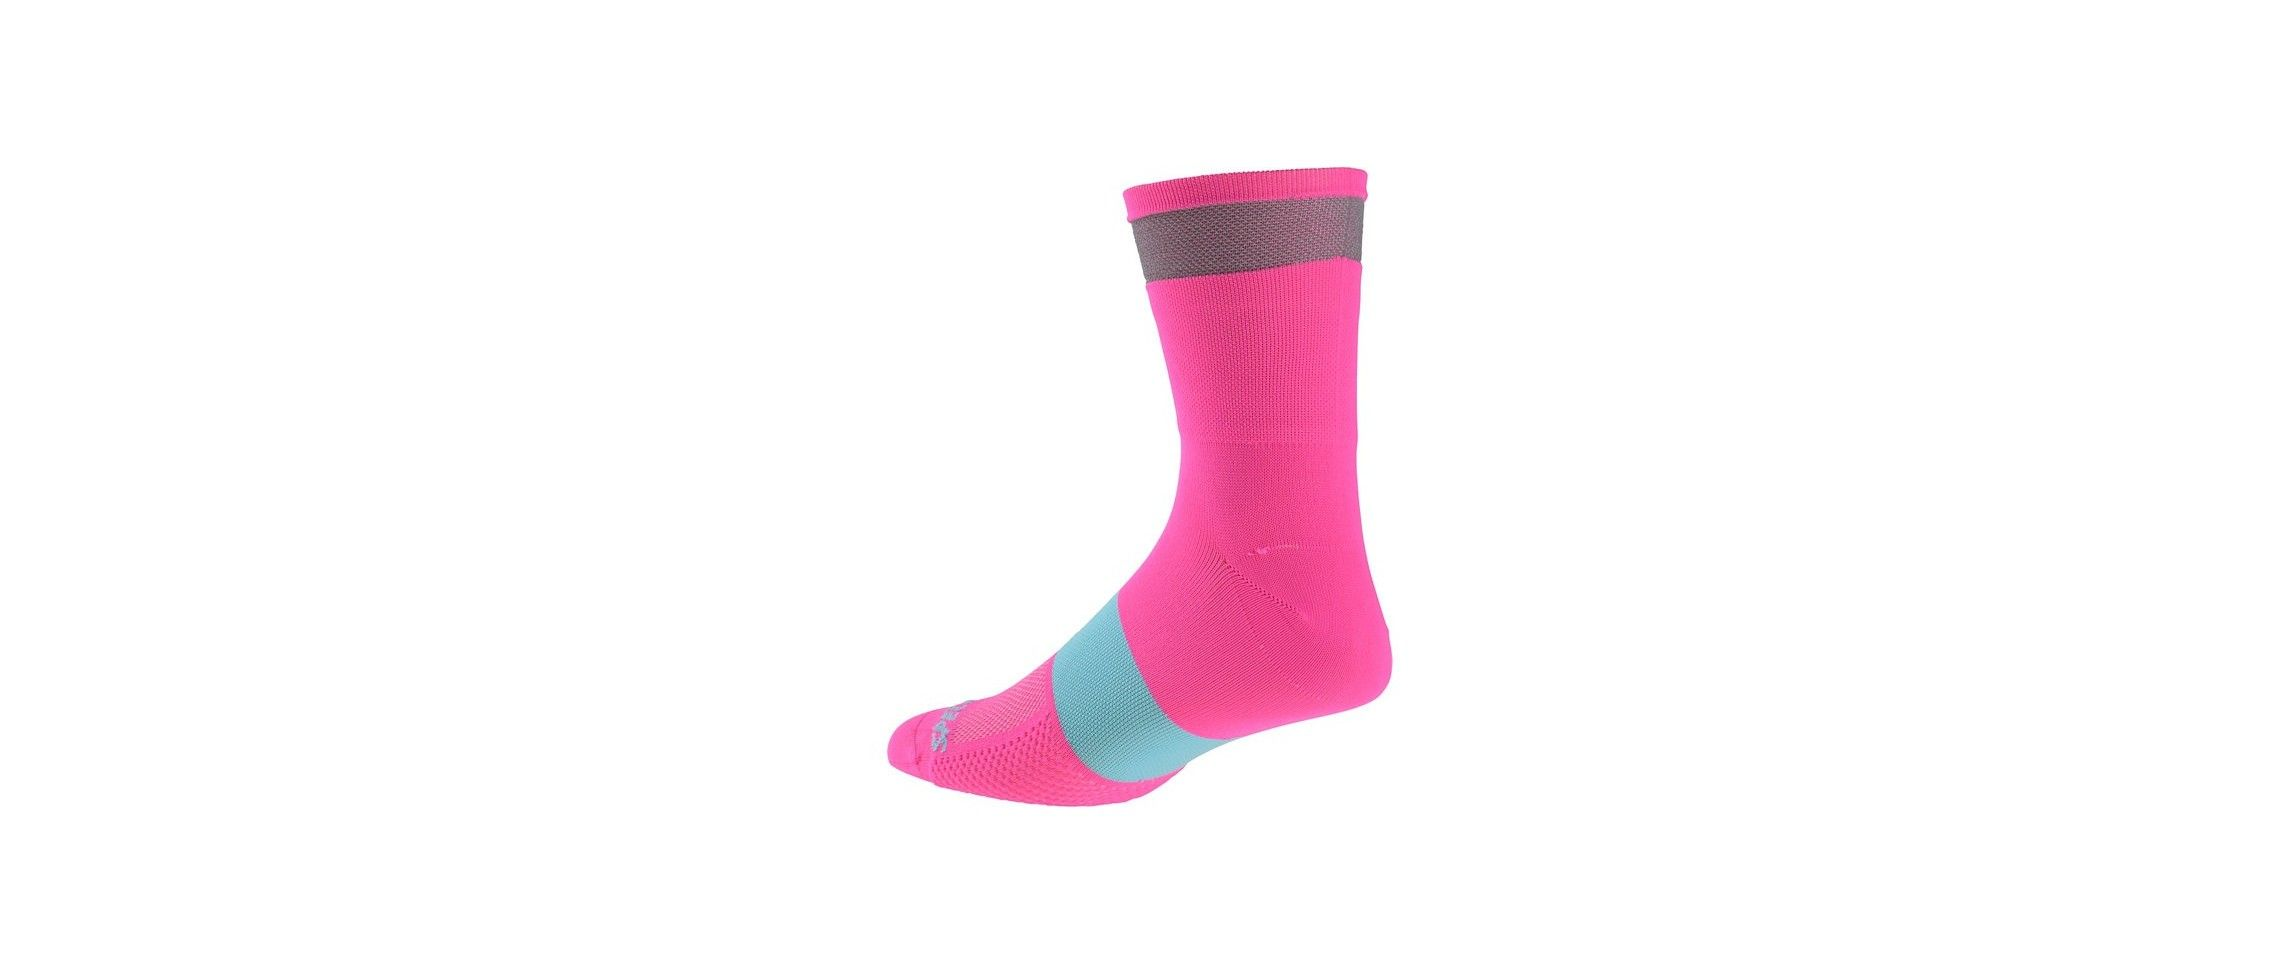 Reflect Tall Calcetines Invierno Specialized Rosa Neon 1 IBKBike.es